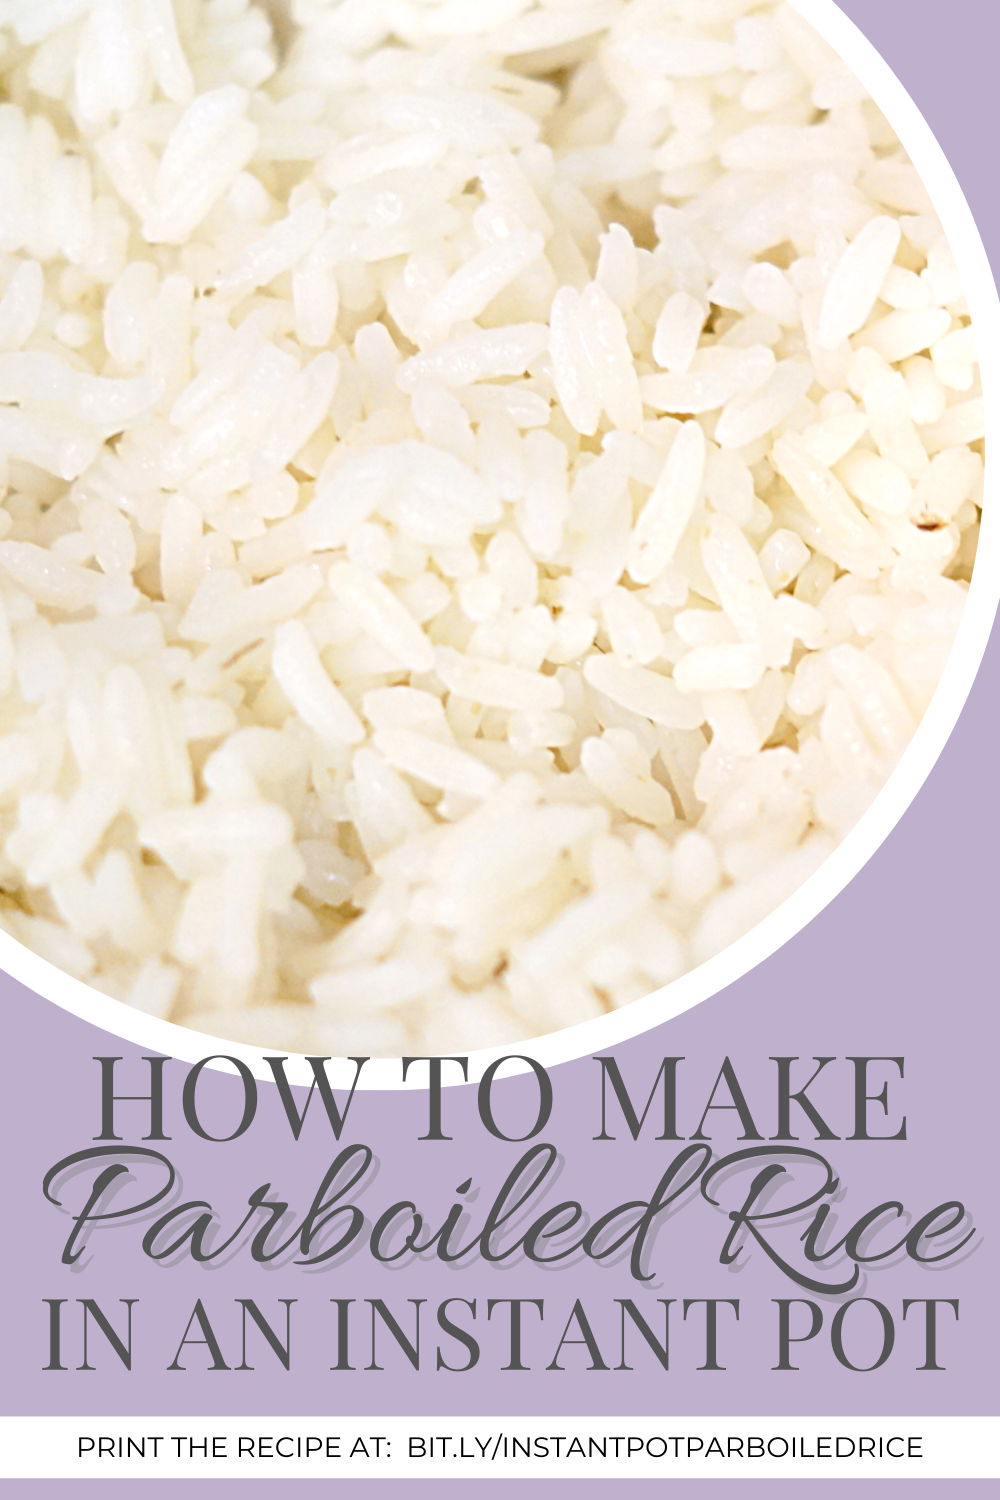 How to Make Parboiled Rice in the Instant Pot